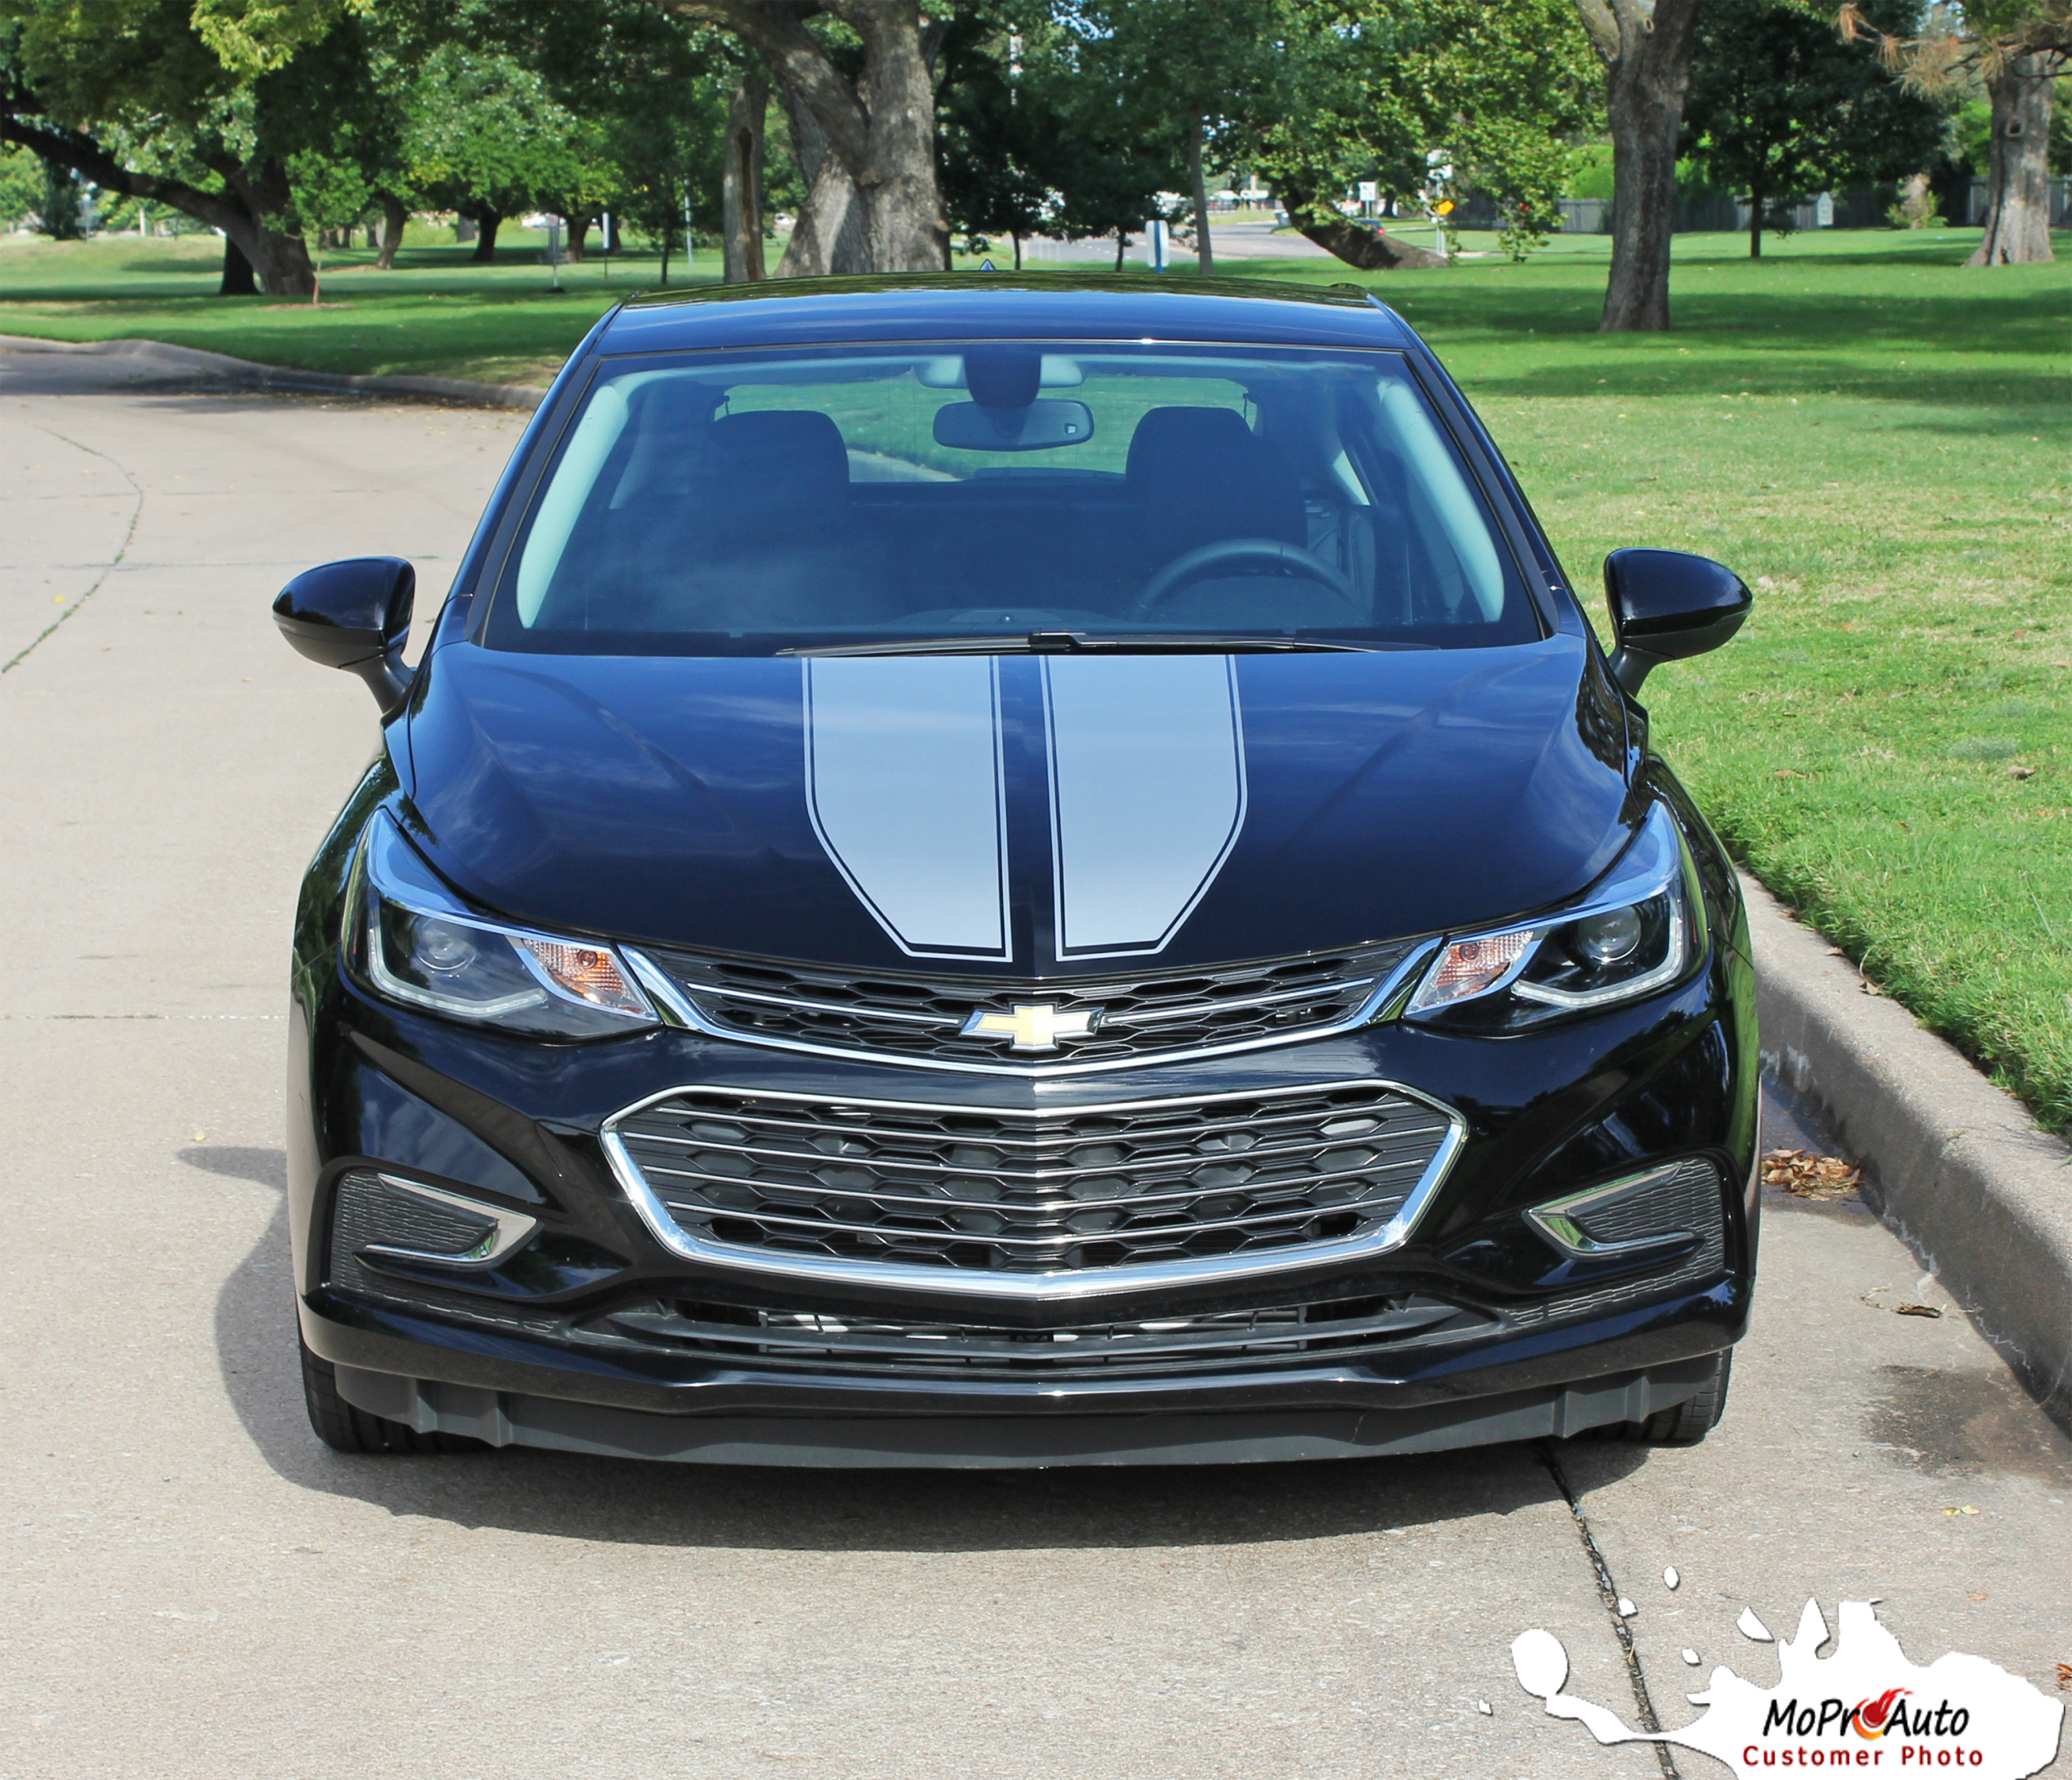 Details about 2016 2019 chevy cruze drift rally hatchback racing stripes vinyl graphics decals